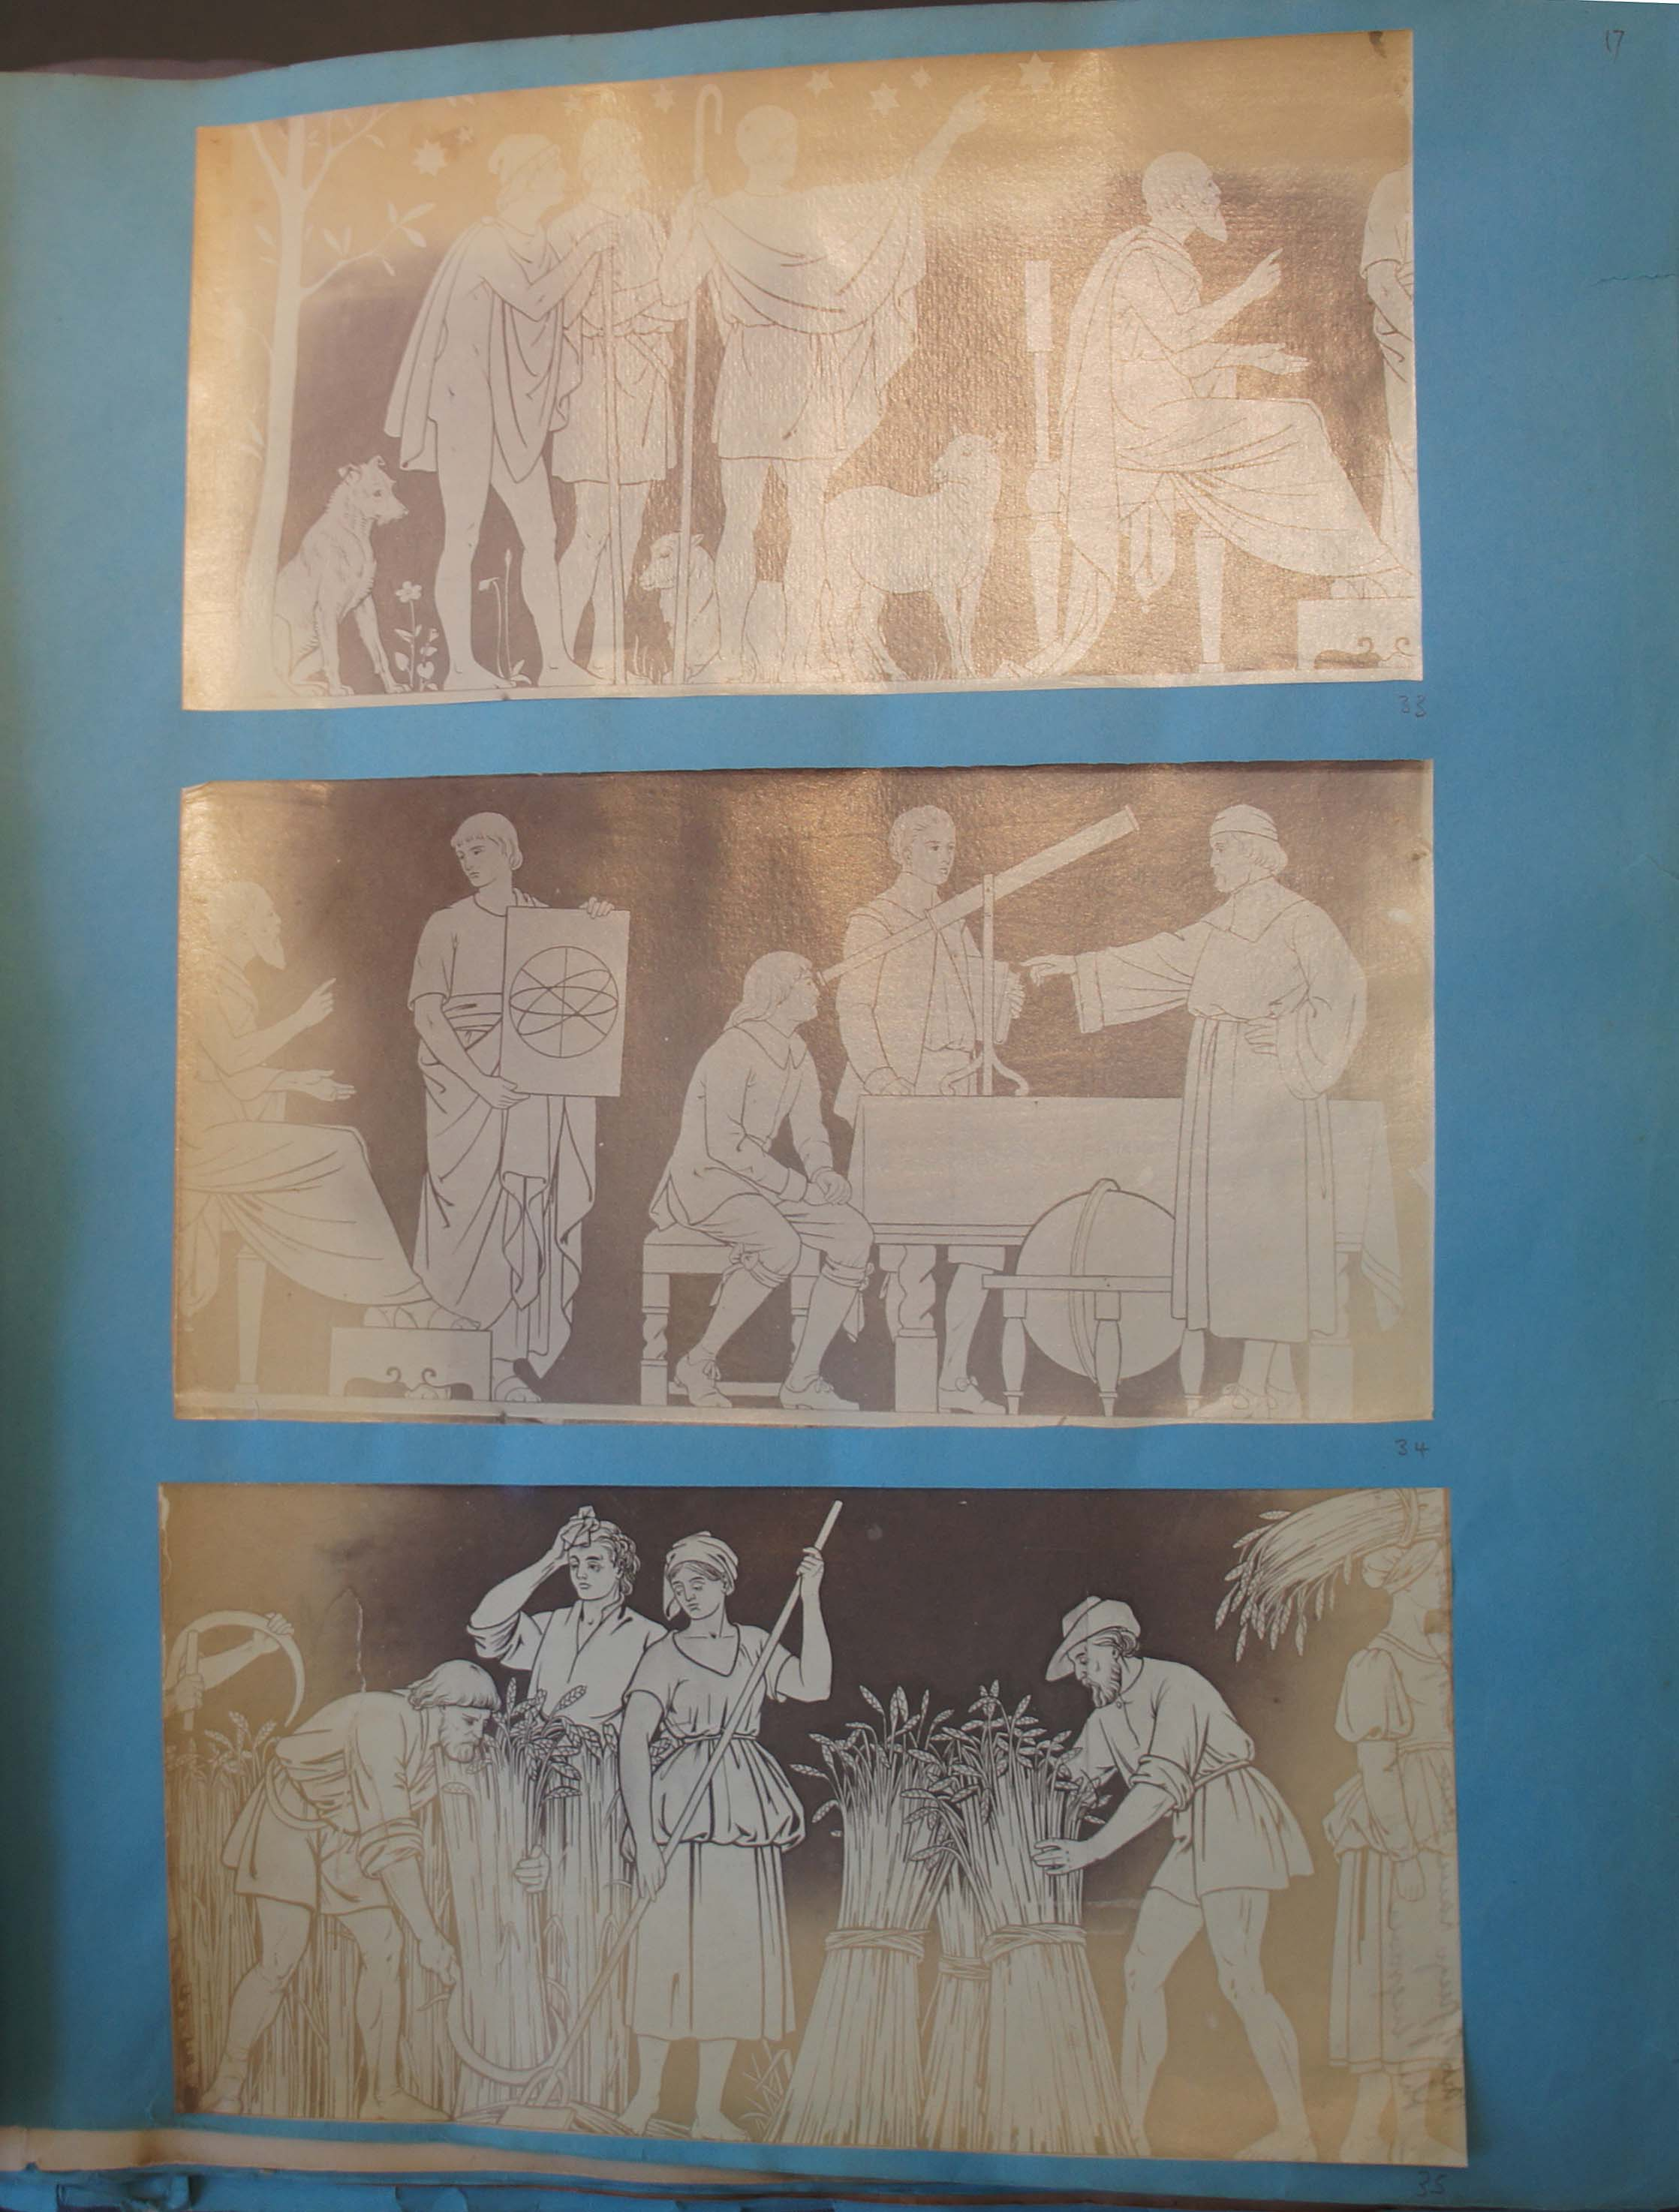 Photographs of the artist's drawings in Benjamin. L. Spackman scrapbook